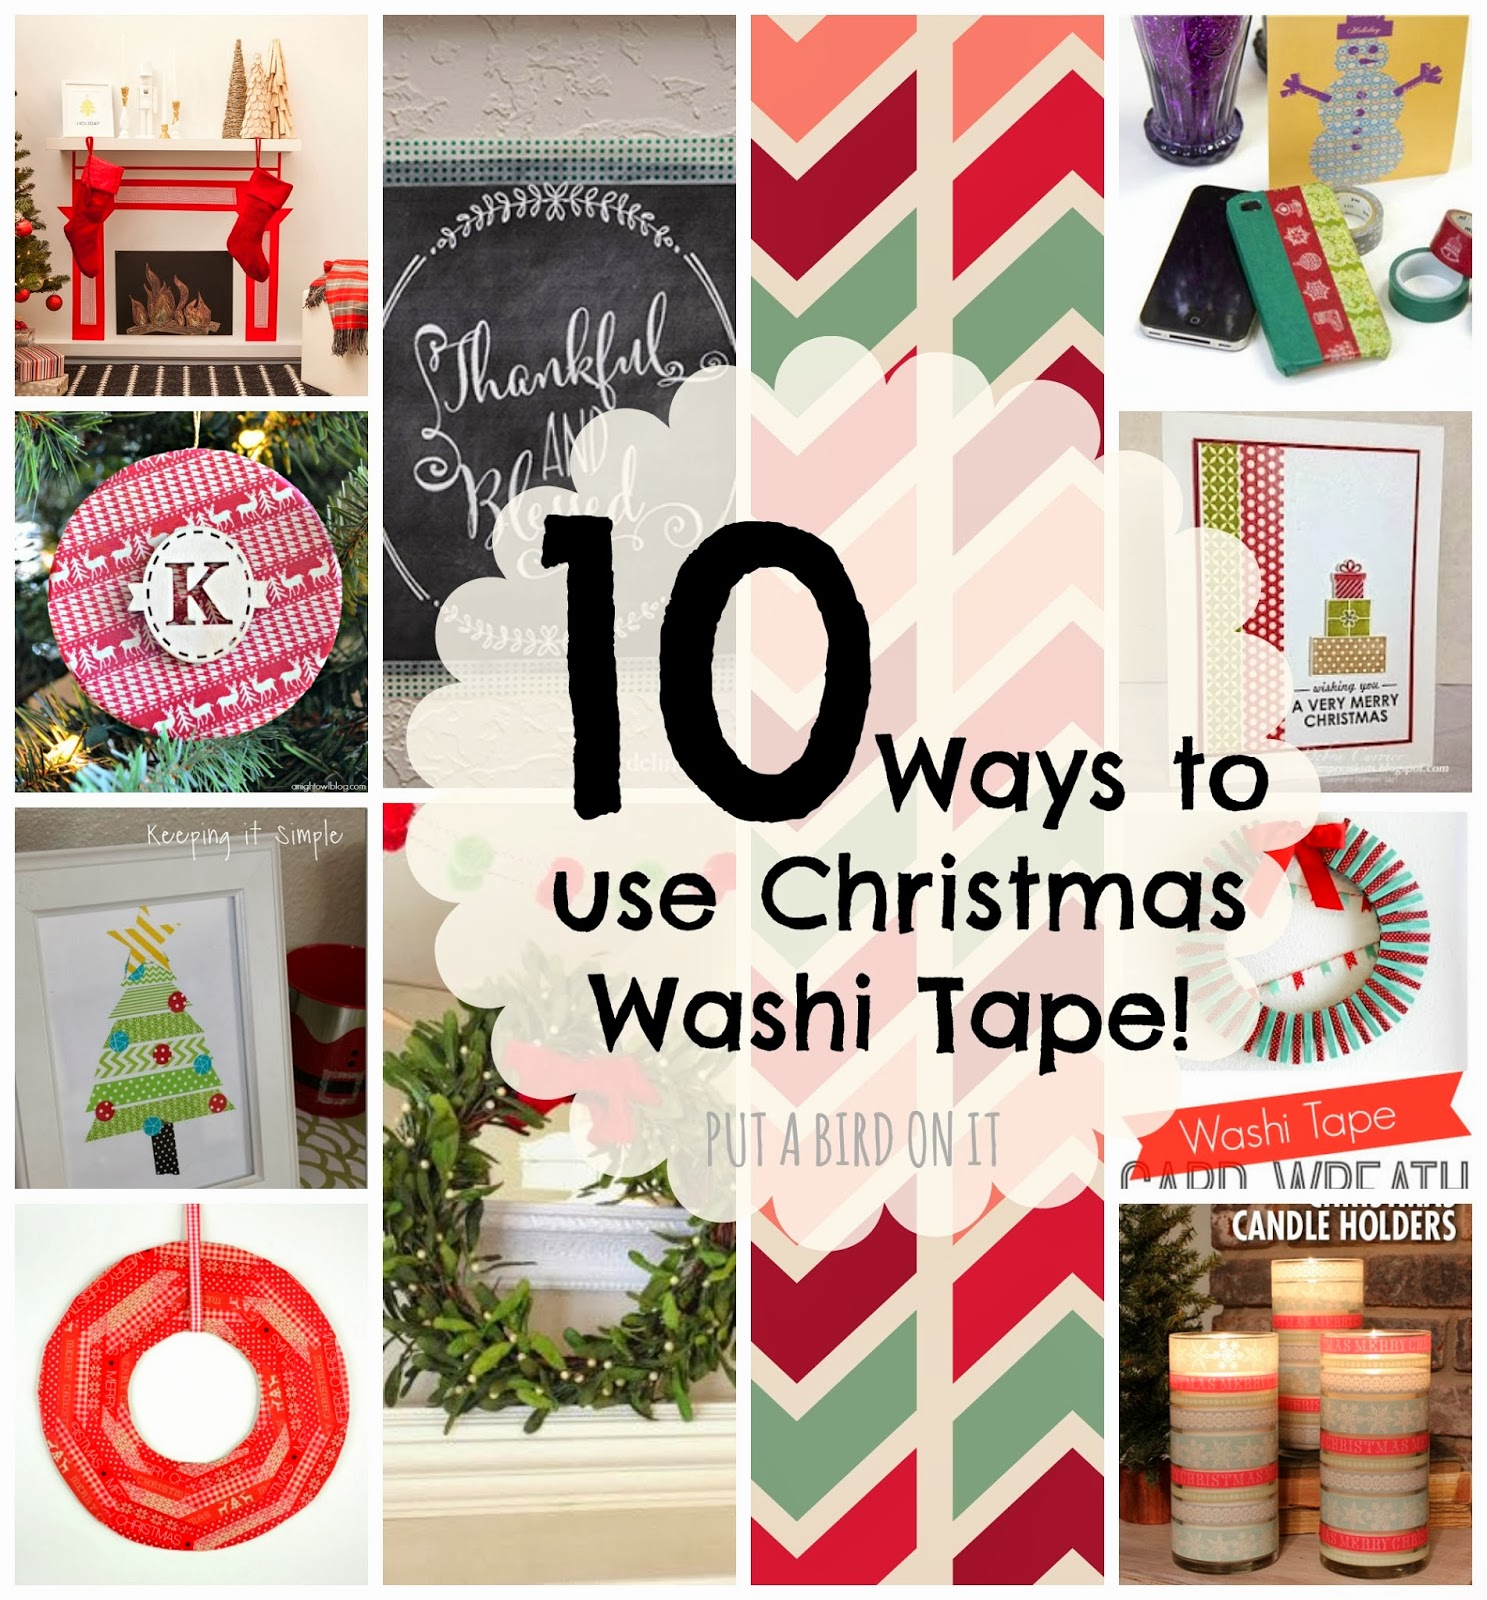 put a bird on it 10 ways to use christmas washi tape. Black Bedroom Furniture Sets. Home Design Ideas